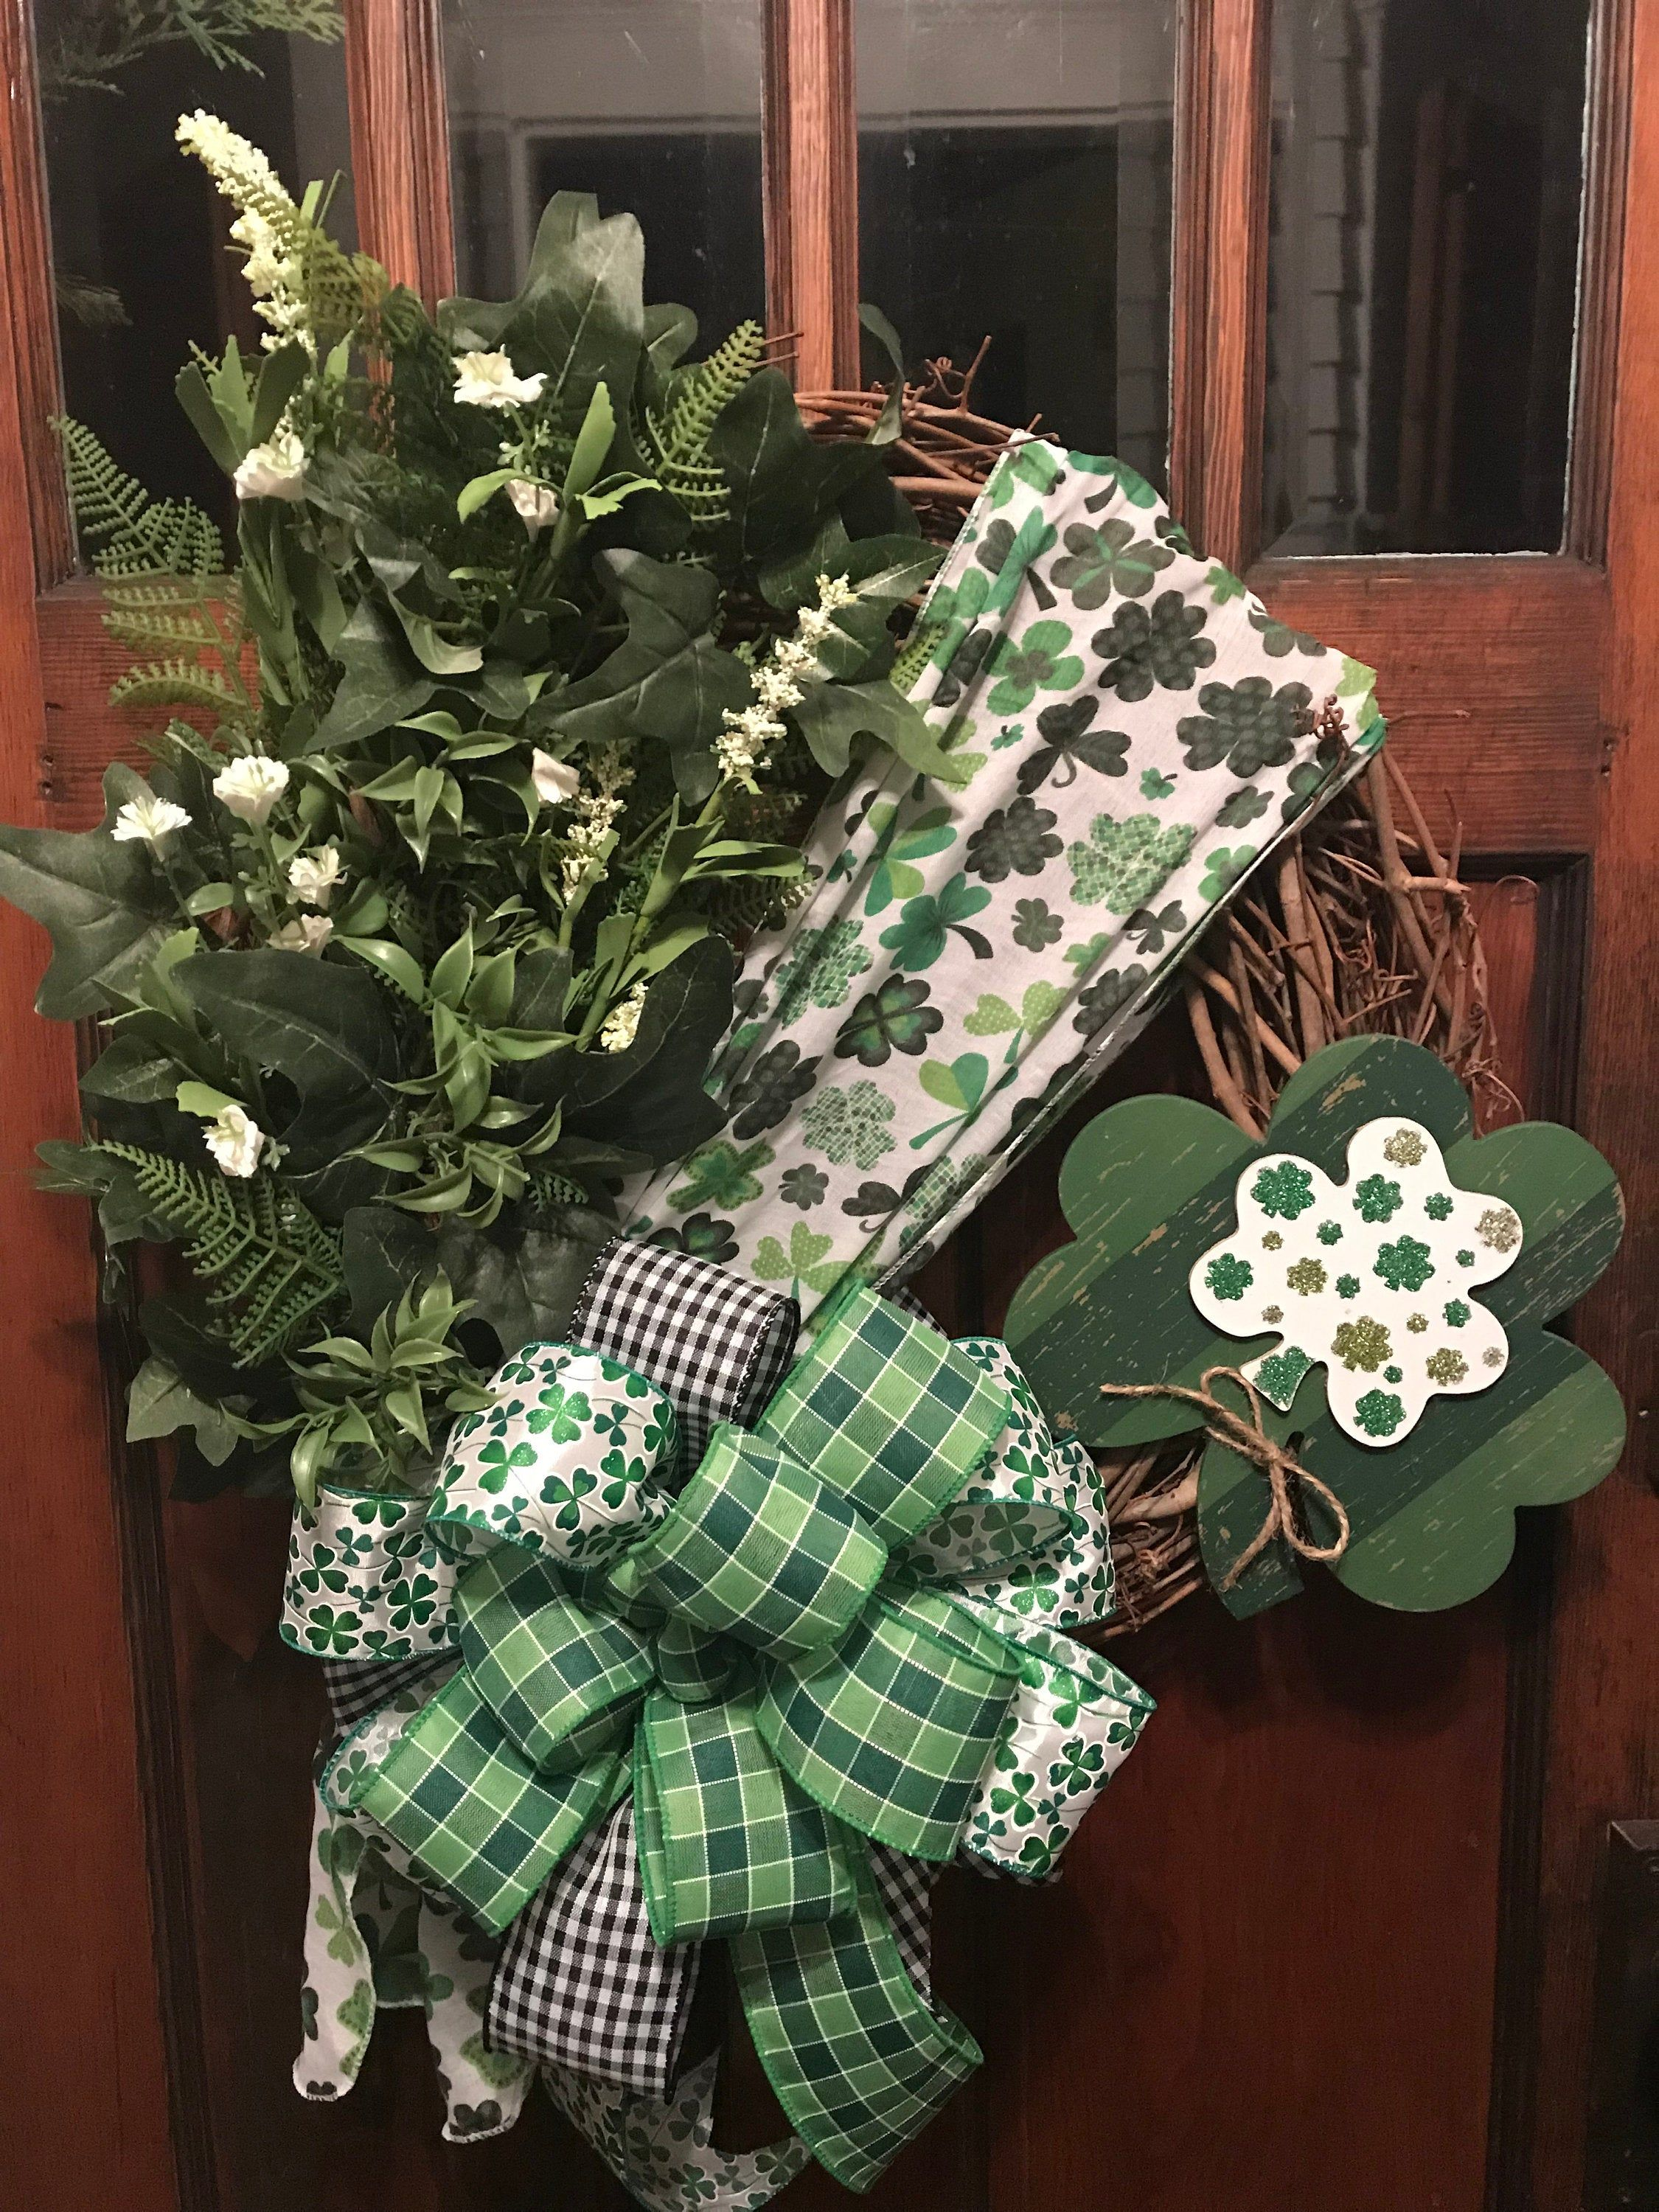 St. Patrick's Day Irish Wreath for front door, Happy St